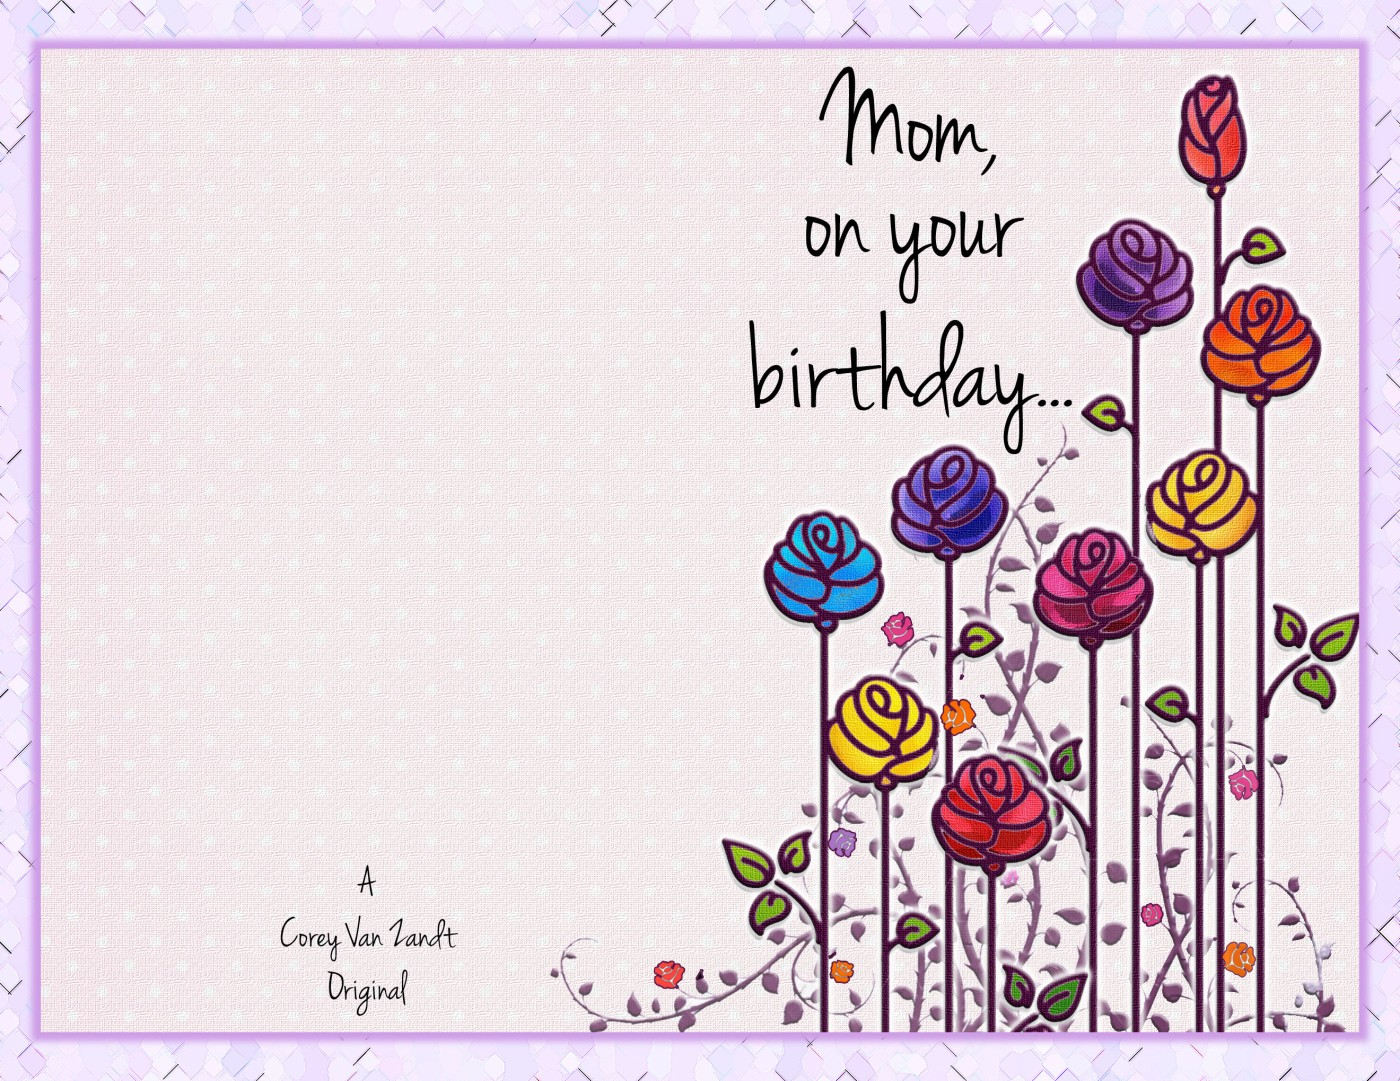 Tactueux image intended for birthday cards for mom printable